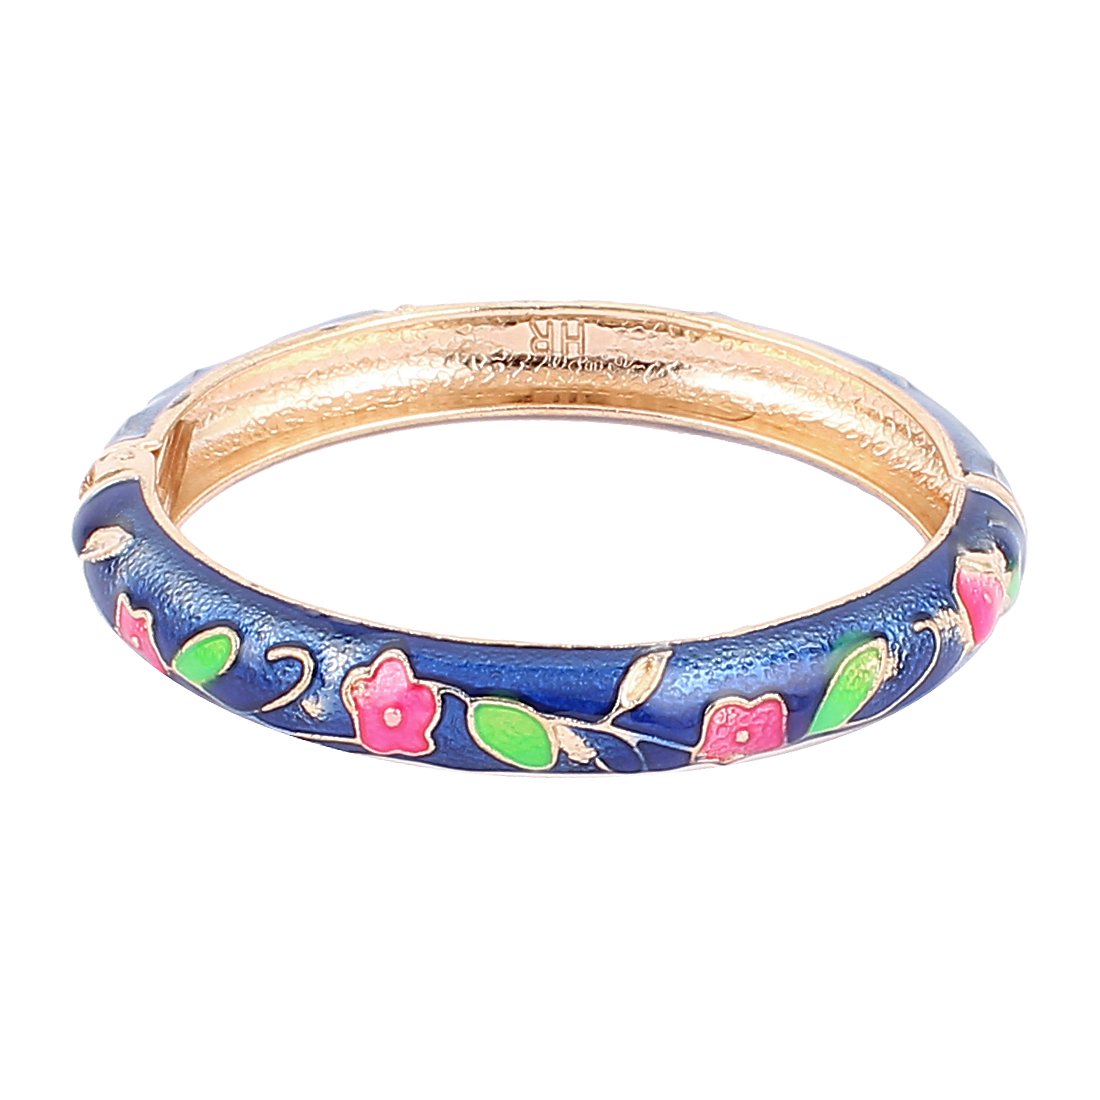 Lady Spring Hinged Round Cuff Flower Pattern Enamel Bracelet Bangle Royal Blue